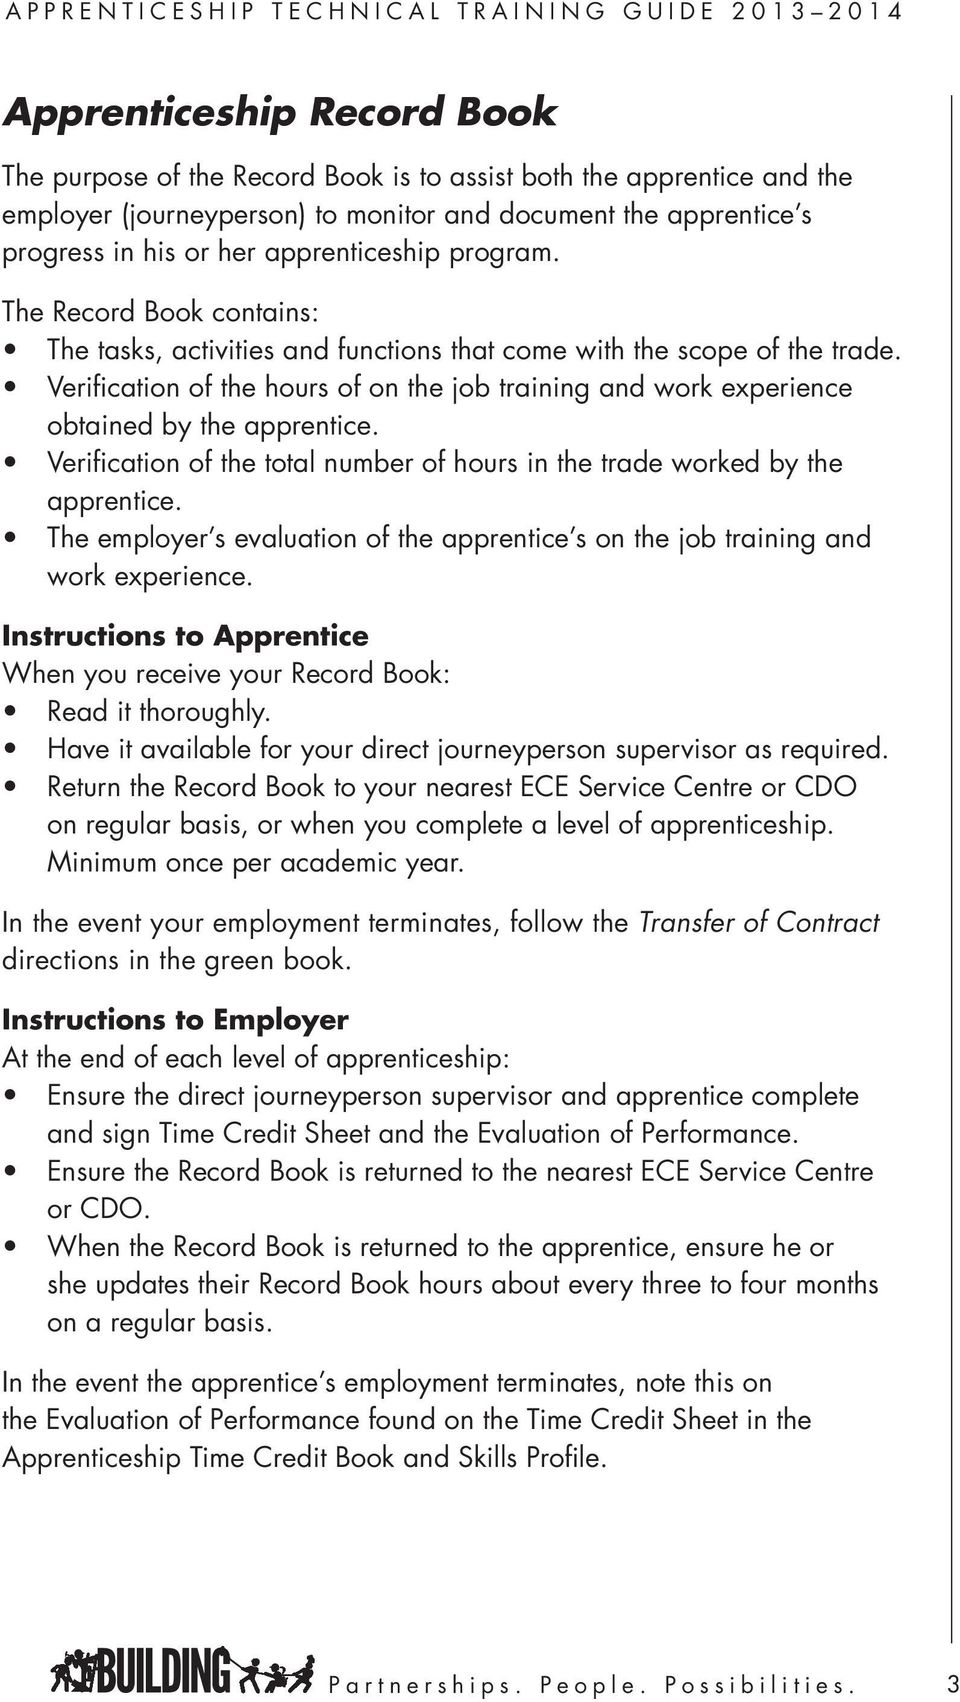 Apprenticeship Technical Training Guide  A Resource Guide